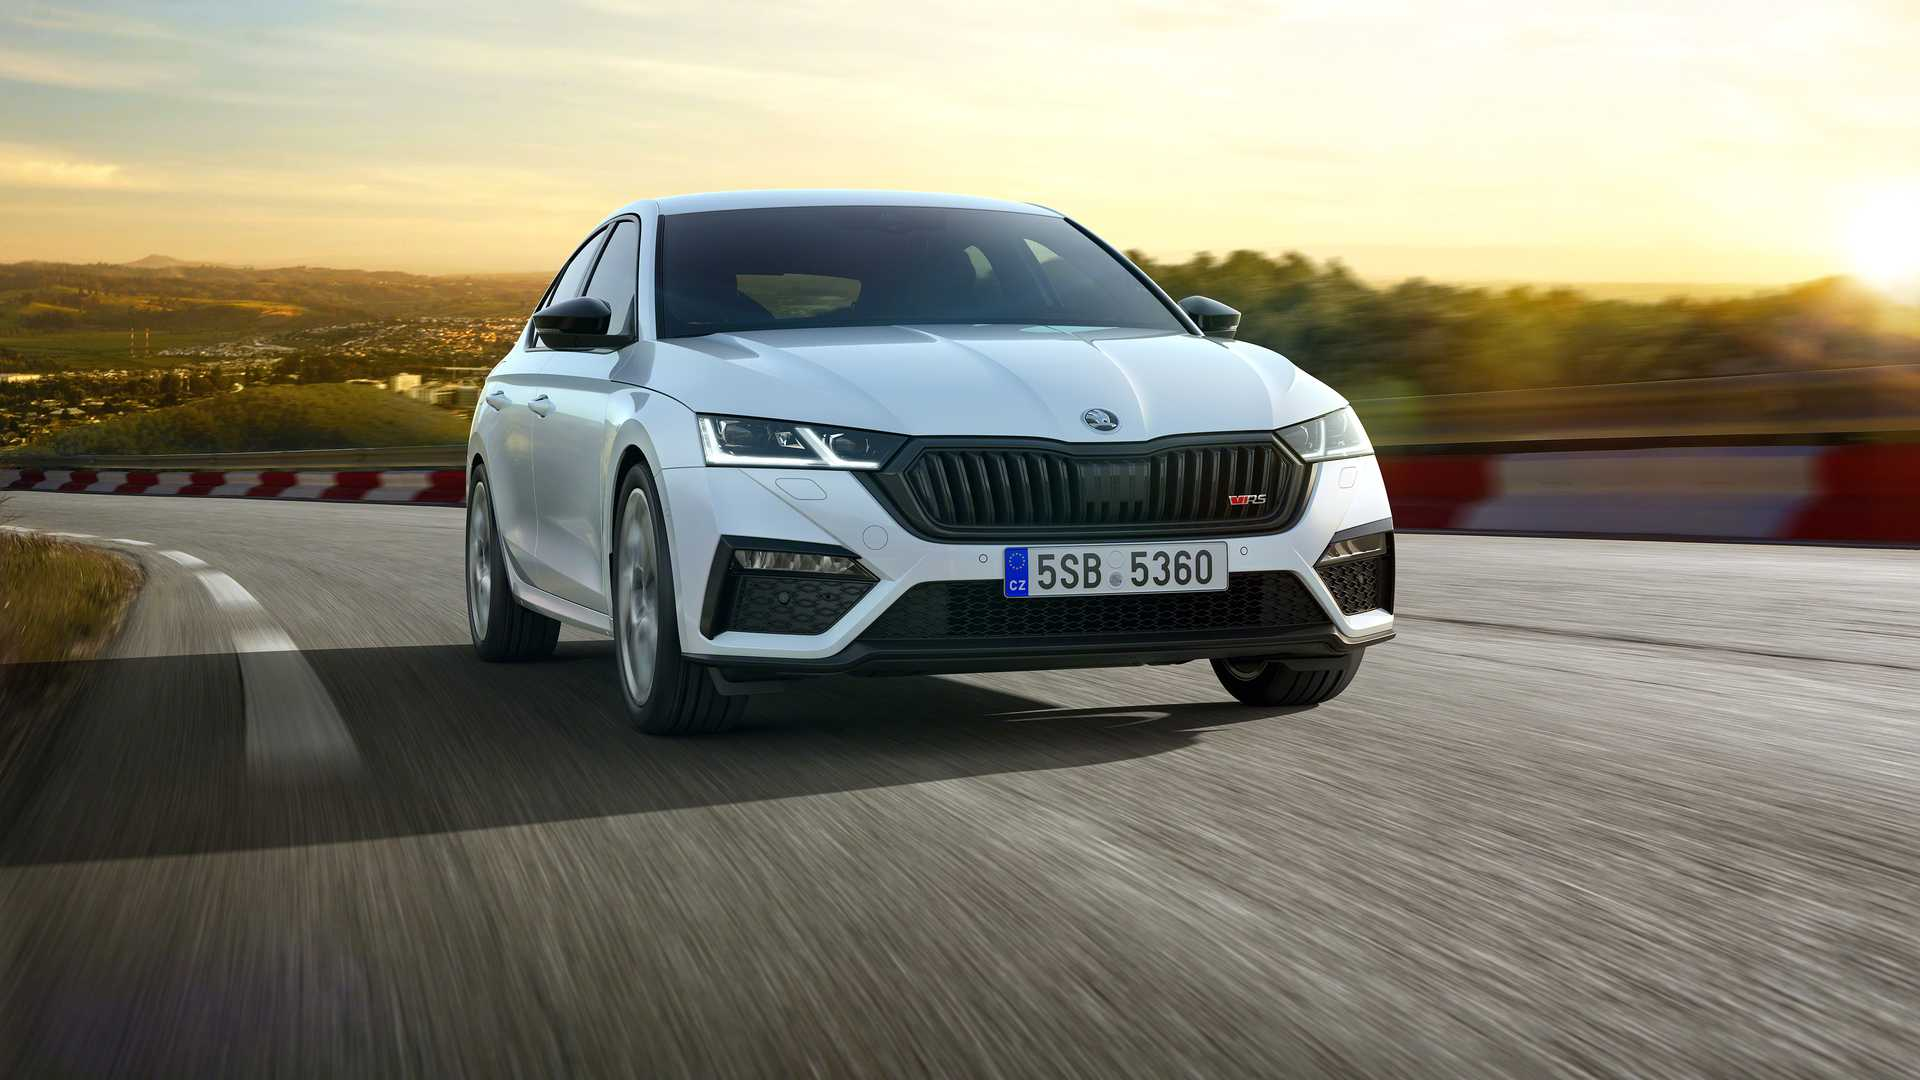 2021 Skoda Octavia Rs Iv Revealed With 242 Electrified Horsepower